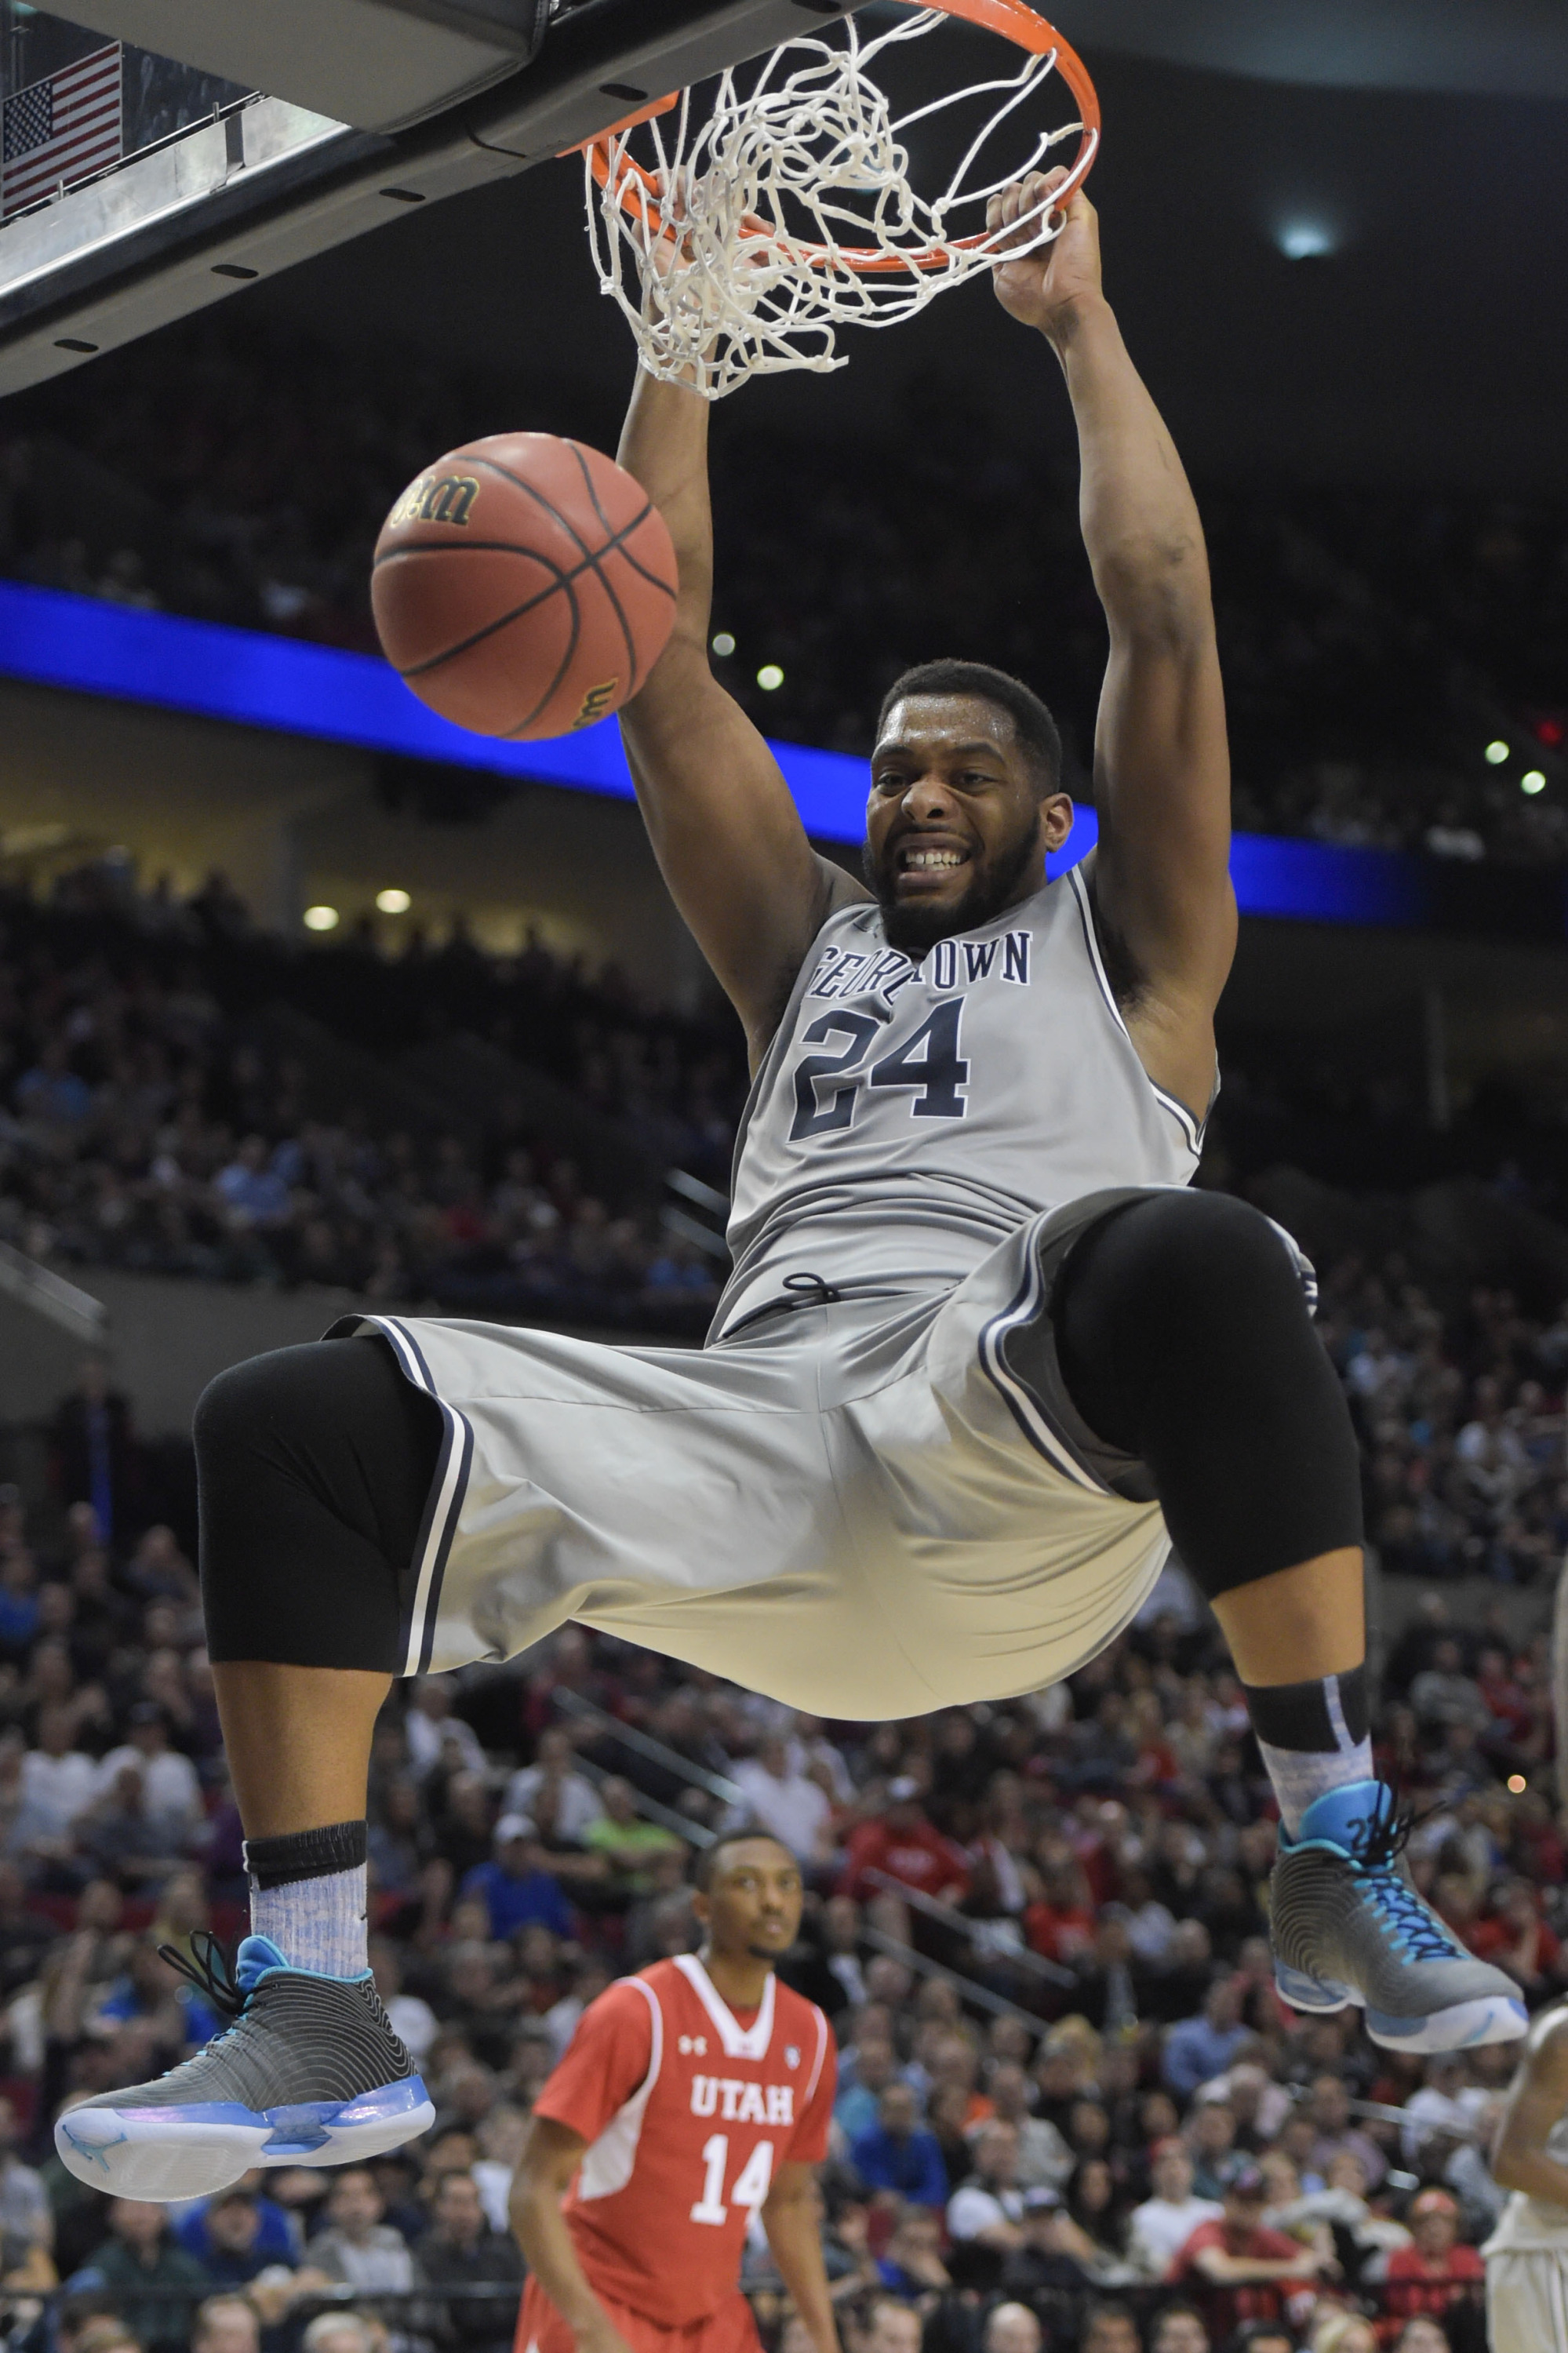 Georgetown lost to Utah, 75-64, in the third round of the NCAA Tournament.